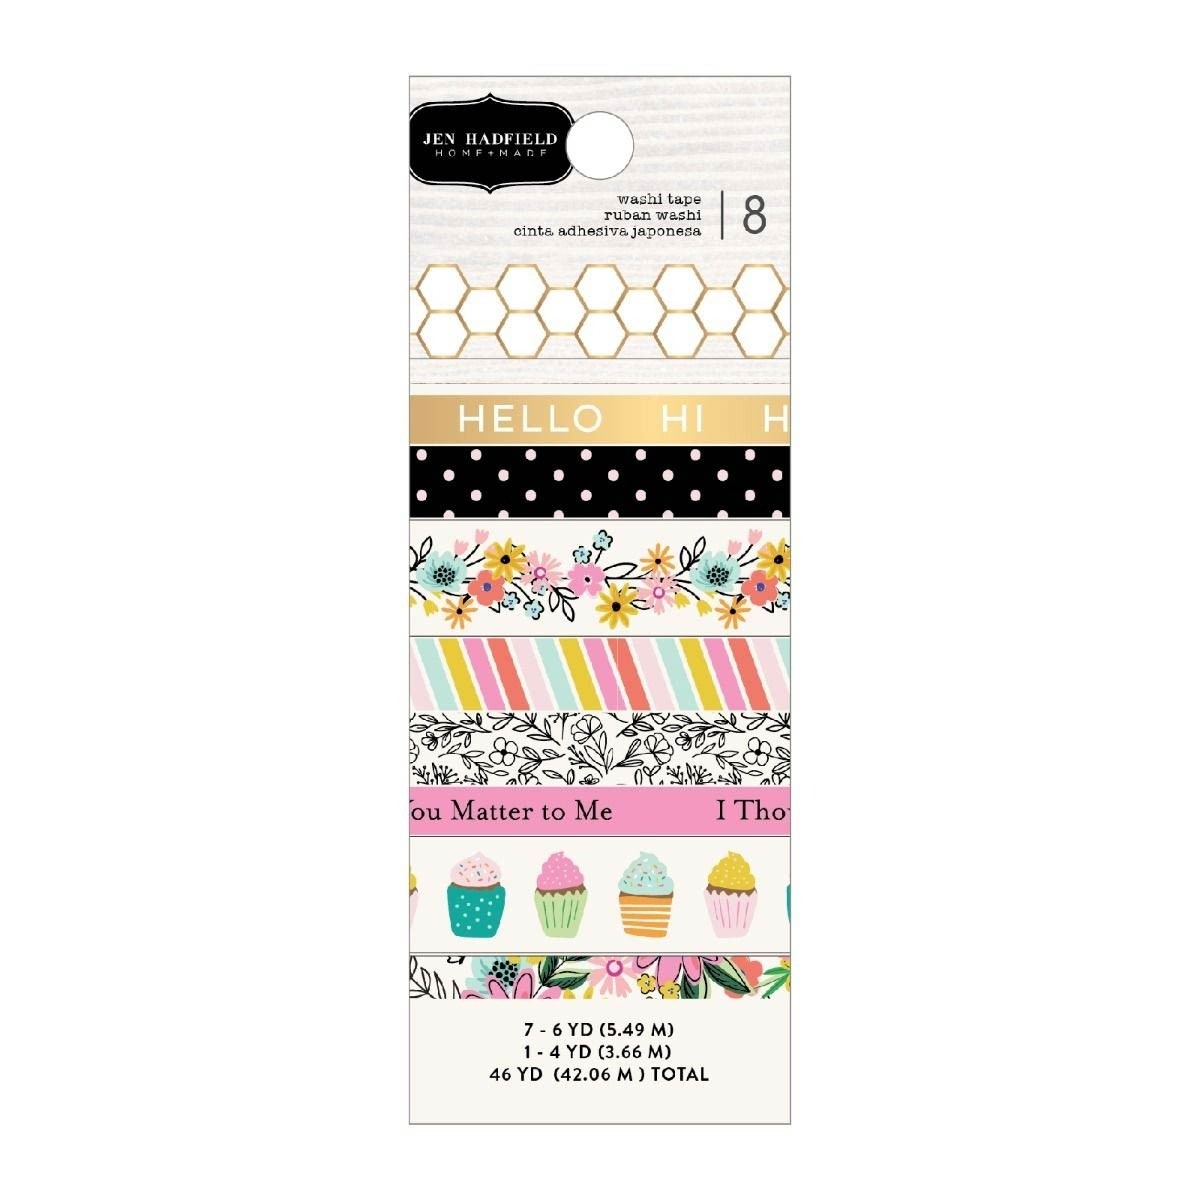 Hey, Hello Washi Tape - Jen Hadfield